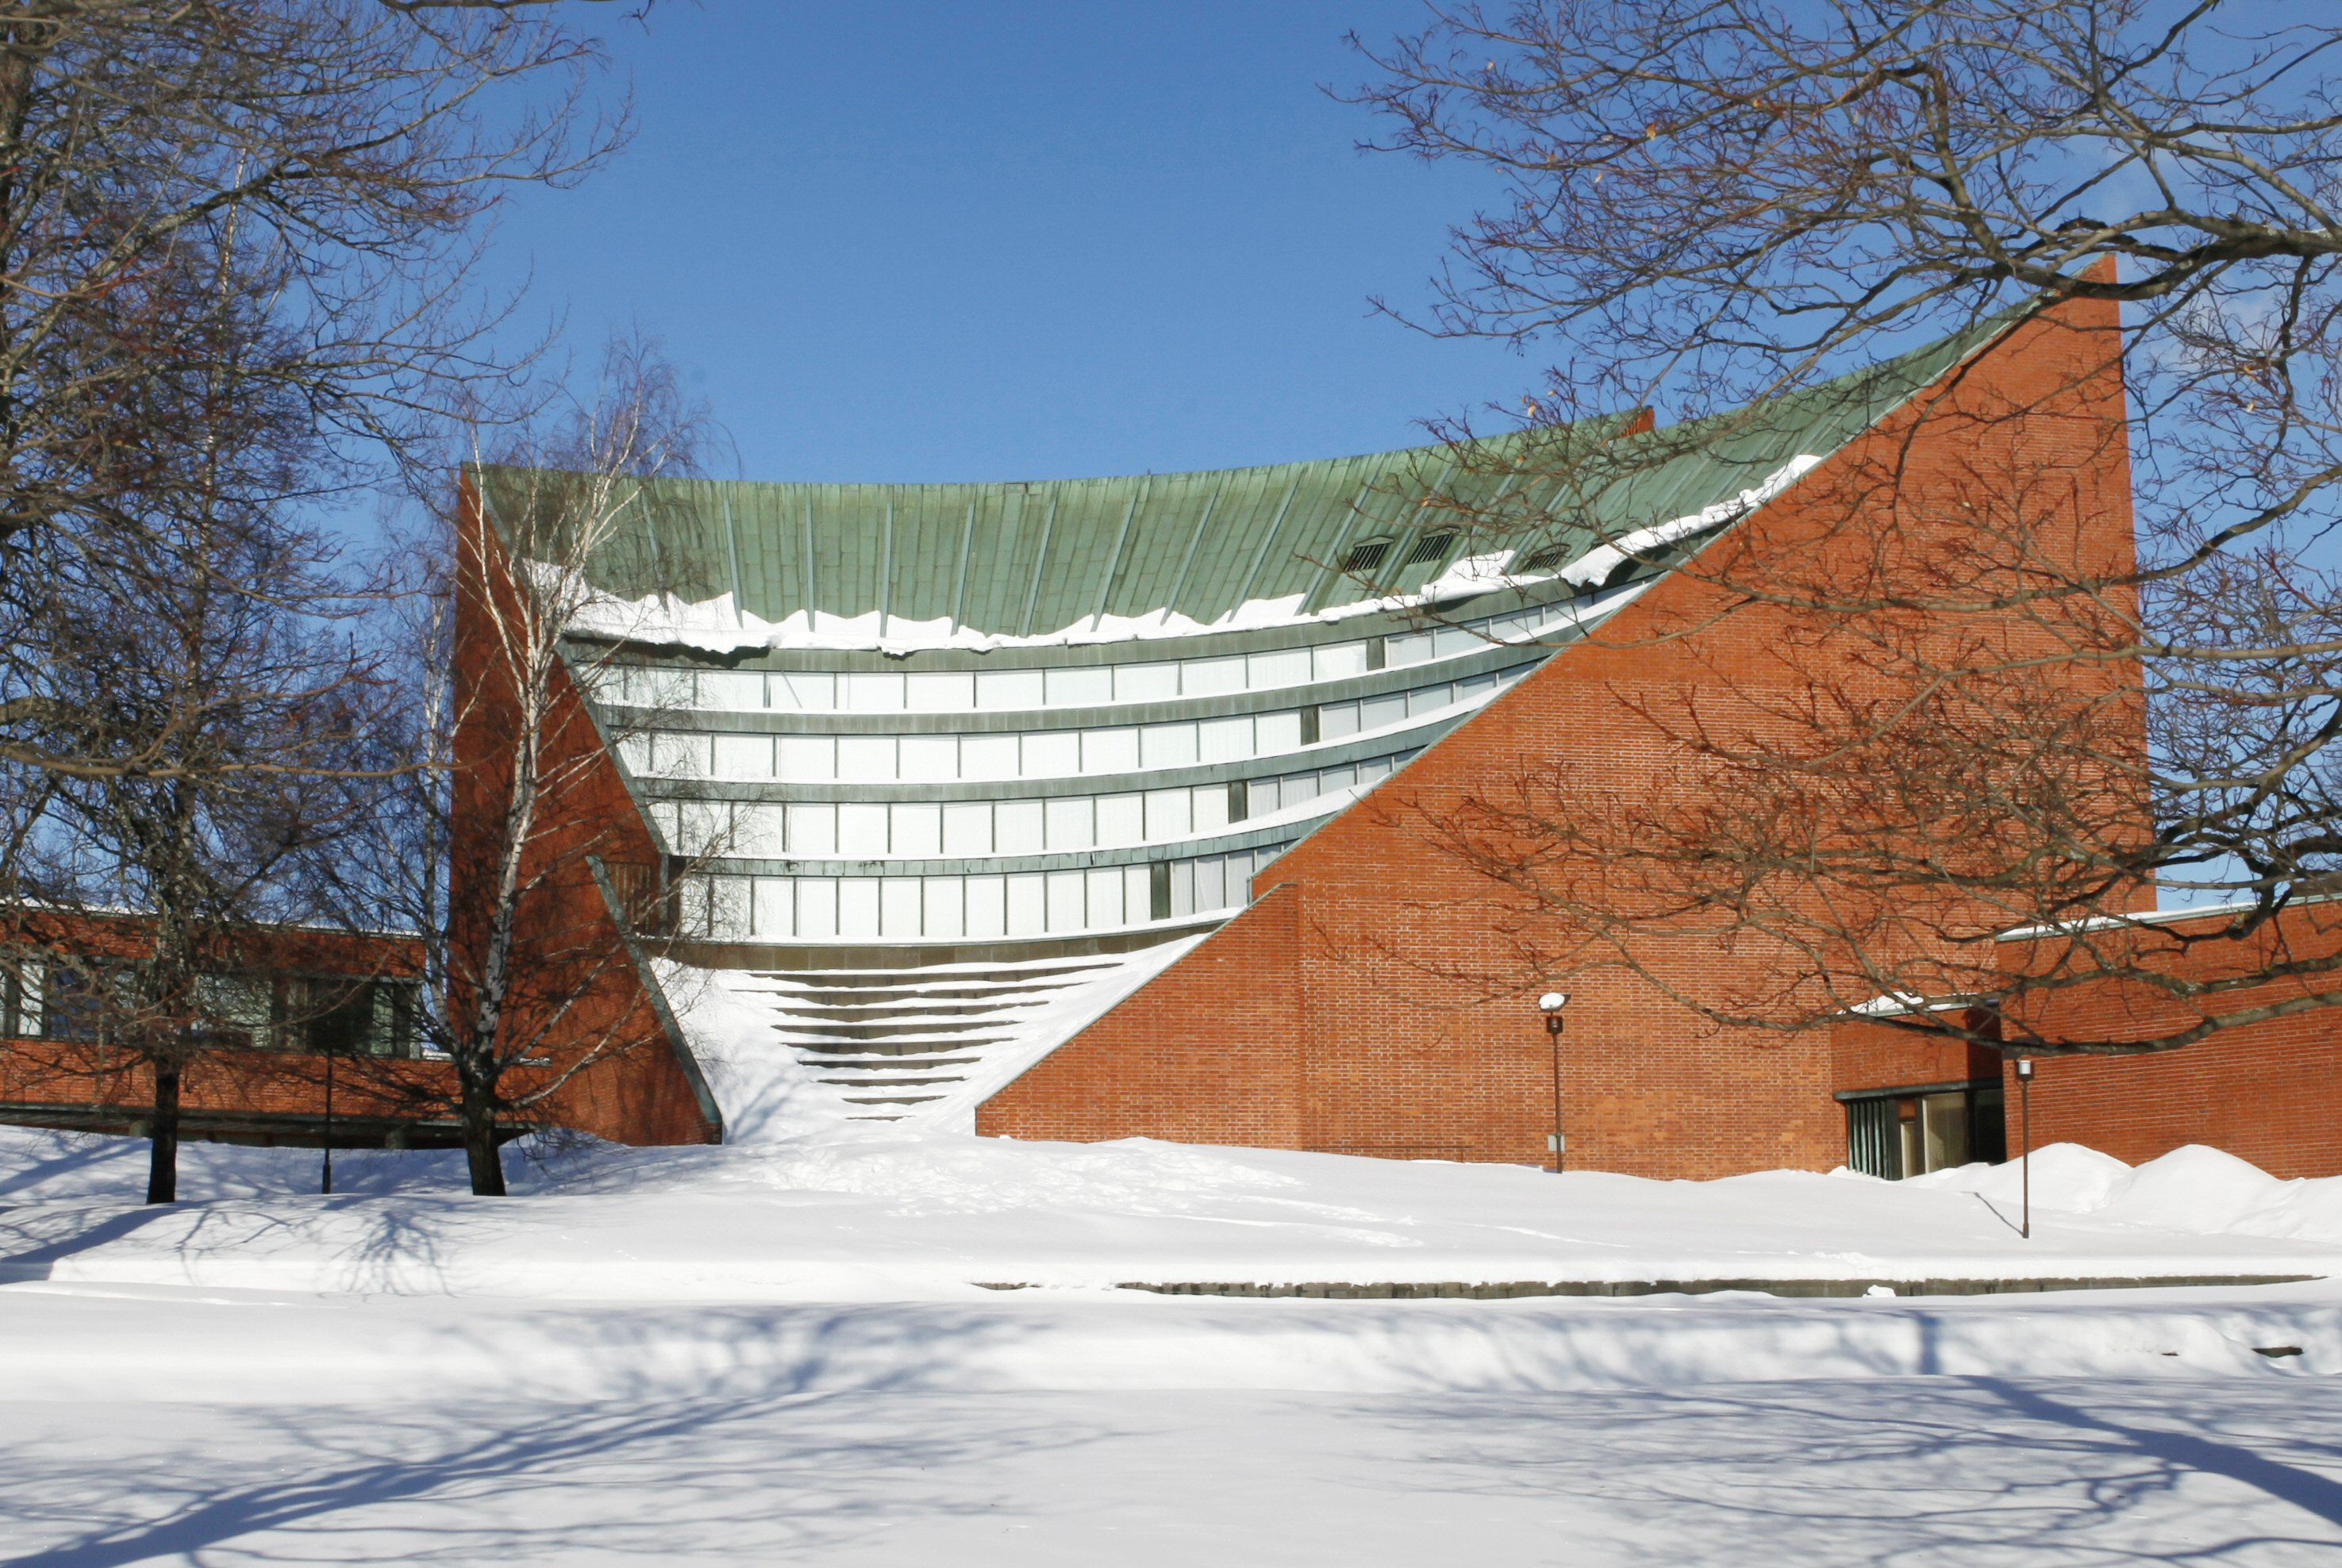 The old Helsinki University of Technology, designed by Aalto in the 1960s